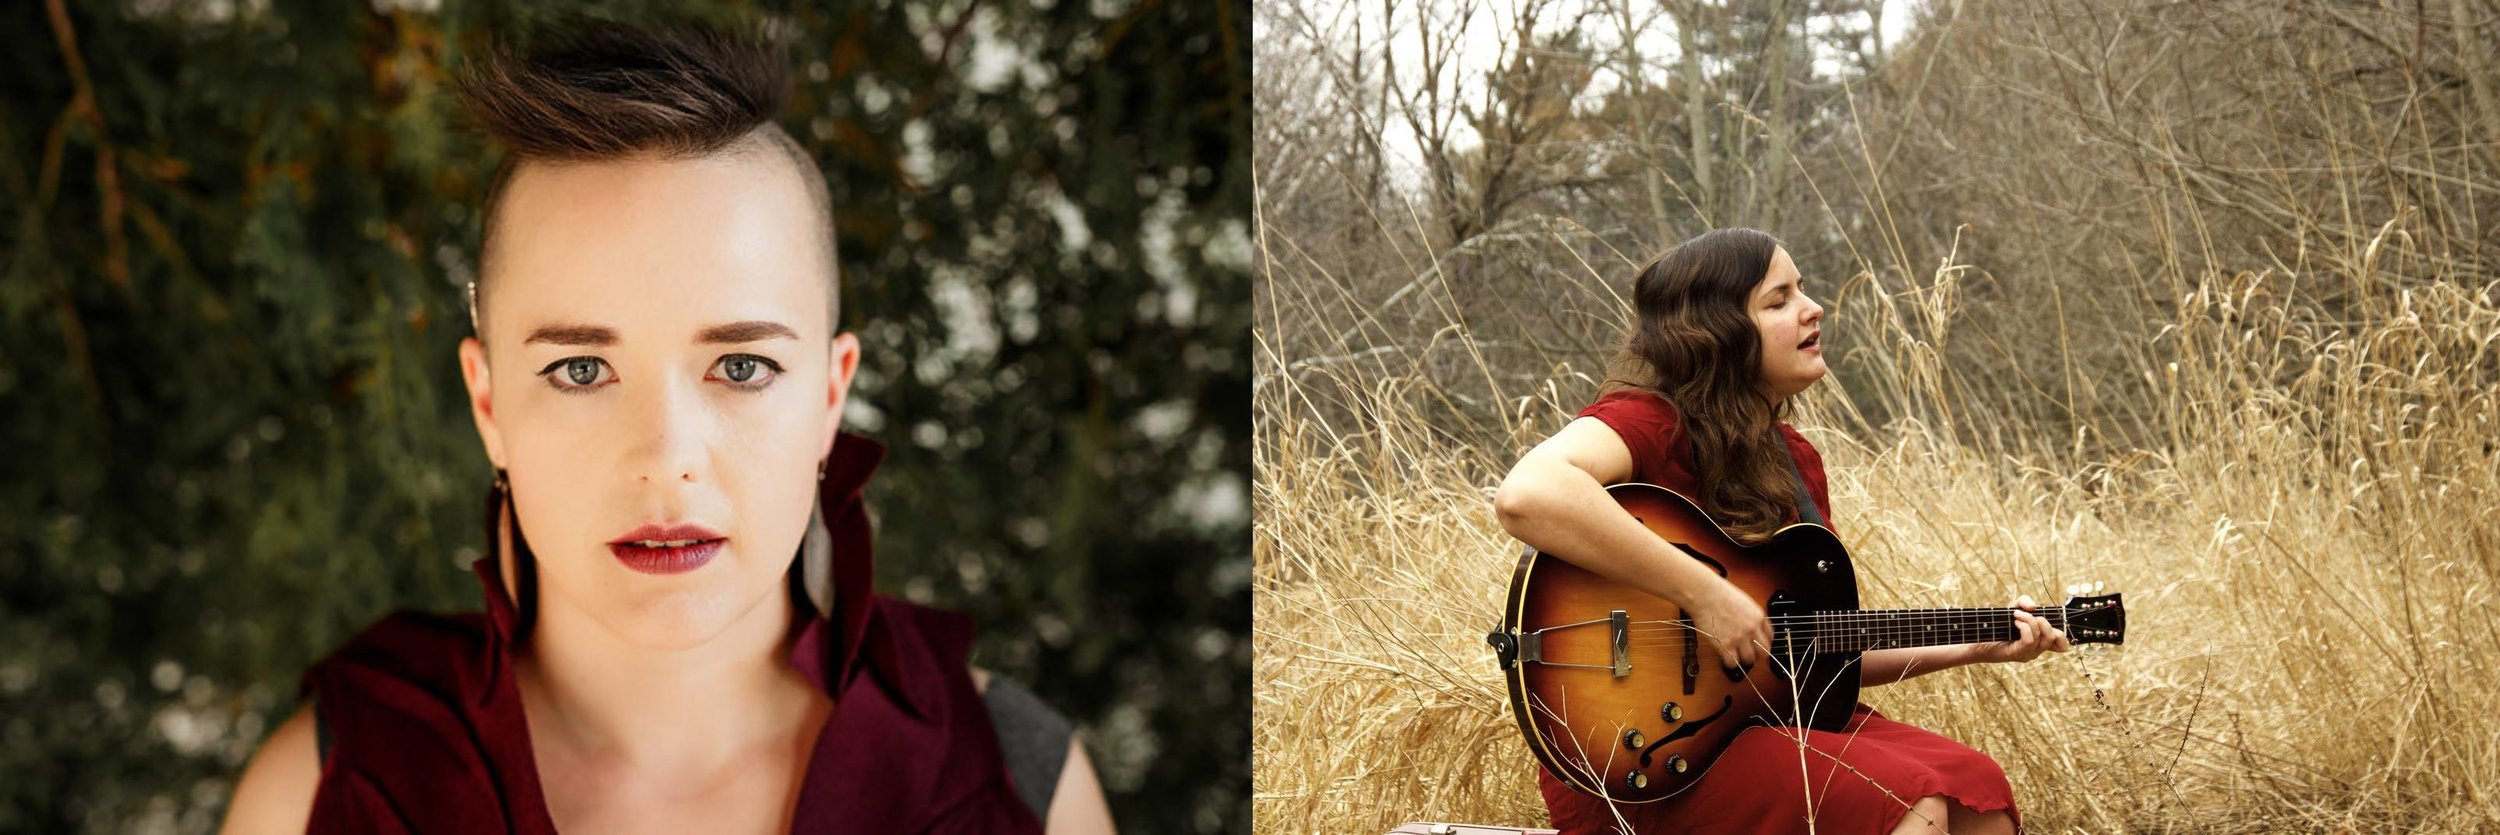 Raine Hamilton & Abigail Lapell - Acclaimed folk singer-songwriters Raine Hamilton and Abigail Lapell—two of Canada's most up and coming names in the folk music scene—present an evening of great music as part of their extensive East Coast tour.JUNE 2019, HALIFAX